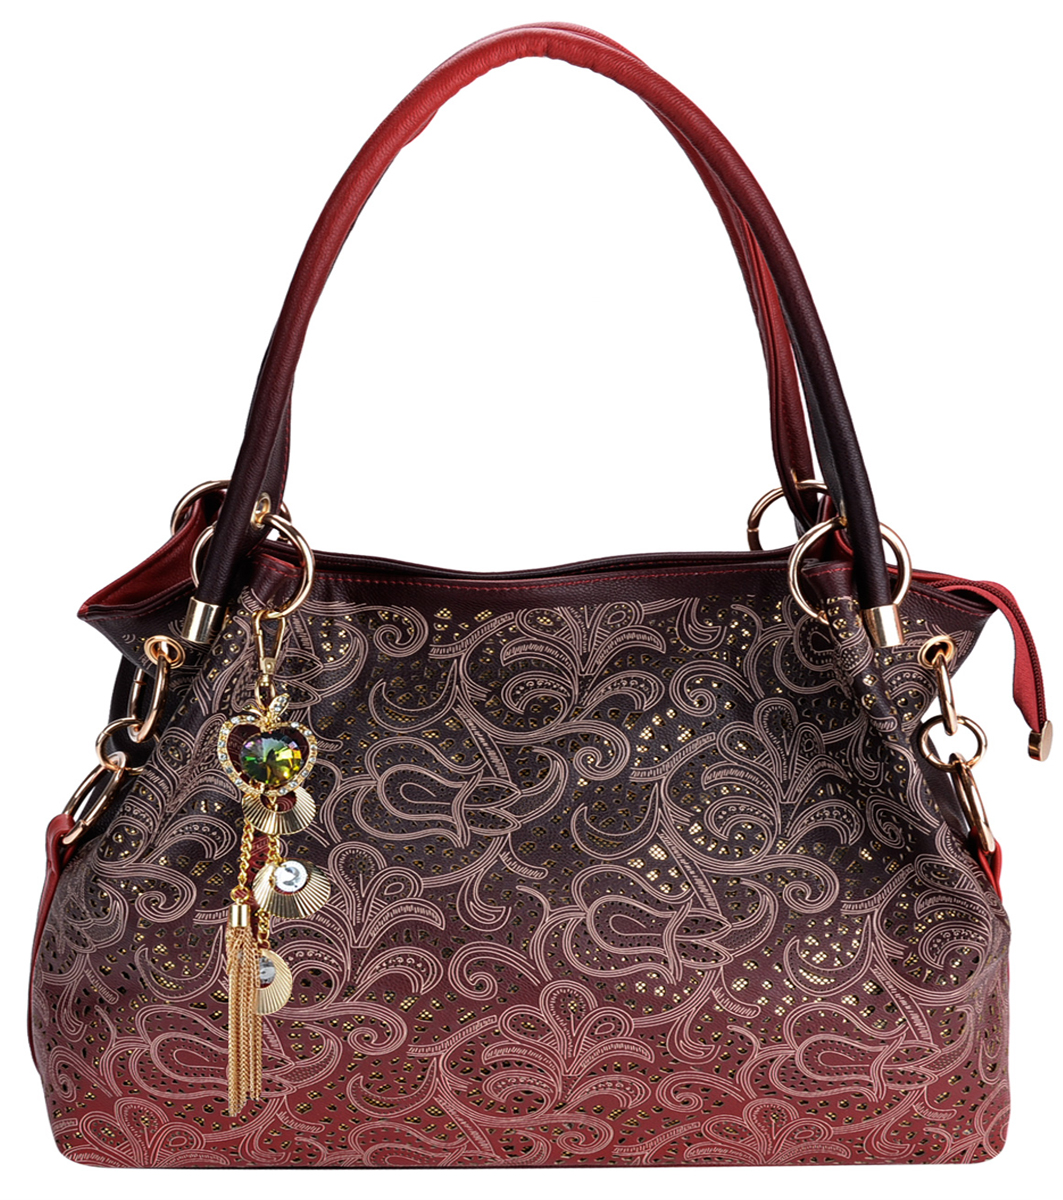 845f45e389b Tinksky - Handbags for Women, Faux Leather Purse Ladies Handbag Vintage Designer  Handbags Shoulder Bag Hollow Out Design with Fine Pendant Fashion Tote Bag  ...